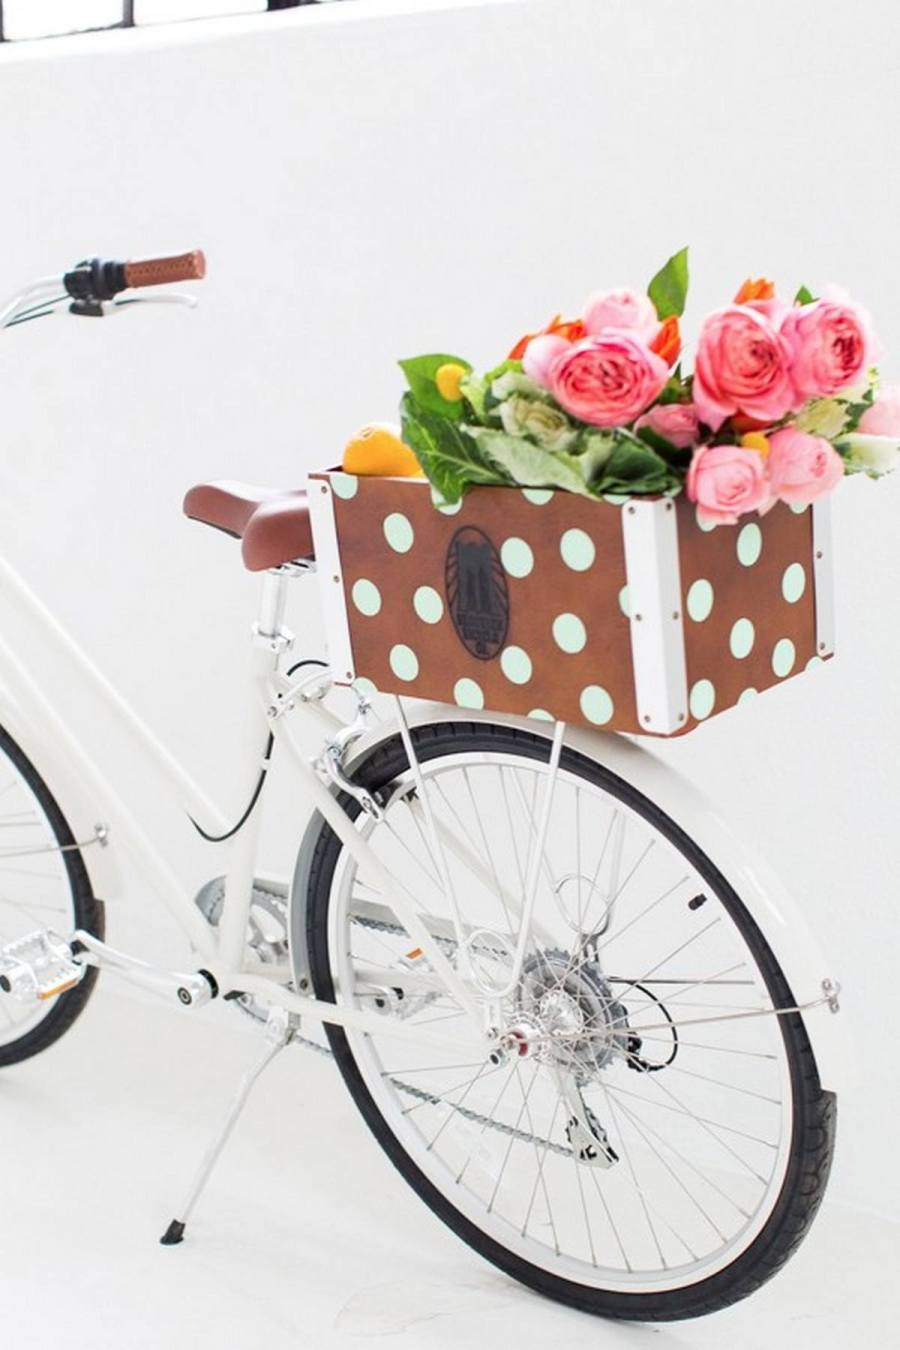 If you like riding a usual (not extreme) bike and going on picnics on it, if you like carrying your pet with you, if you often ride around the town or to the market to buy something, you'll need a bike basket or a crate, it depends on the style and look that you like.